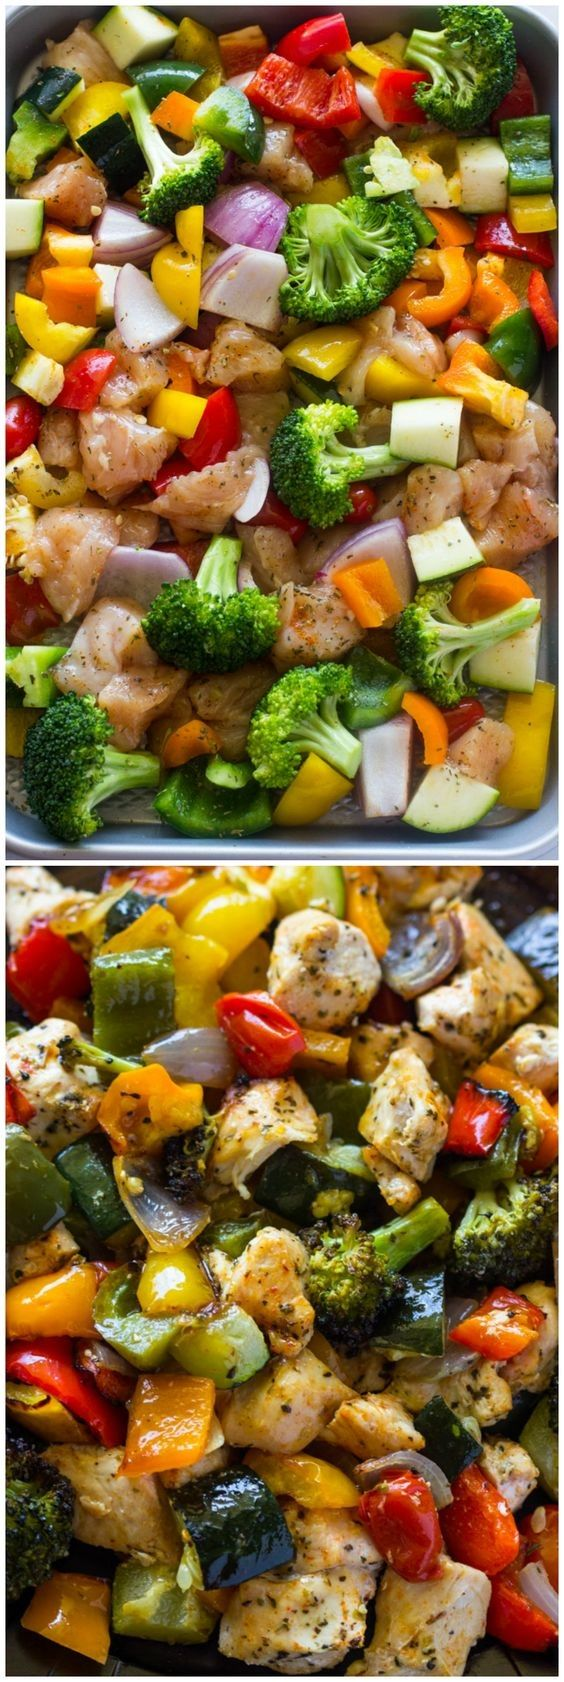 15 MINUTE HEALTHY ROASTED CHICKEN AND VEGGIES (ONE PAN) #cleaneatingforbeginners